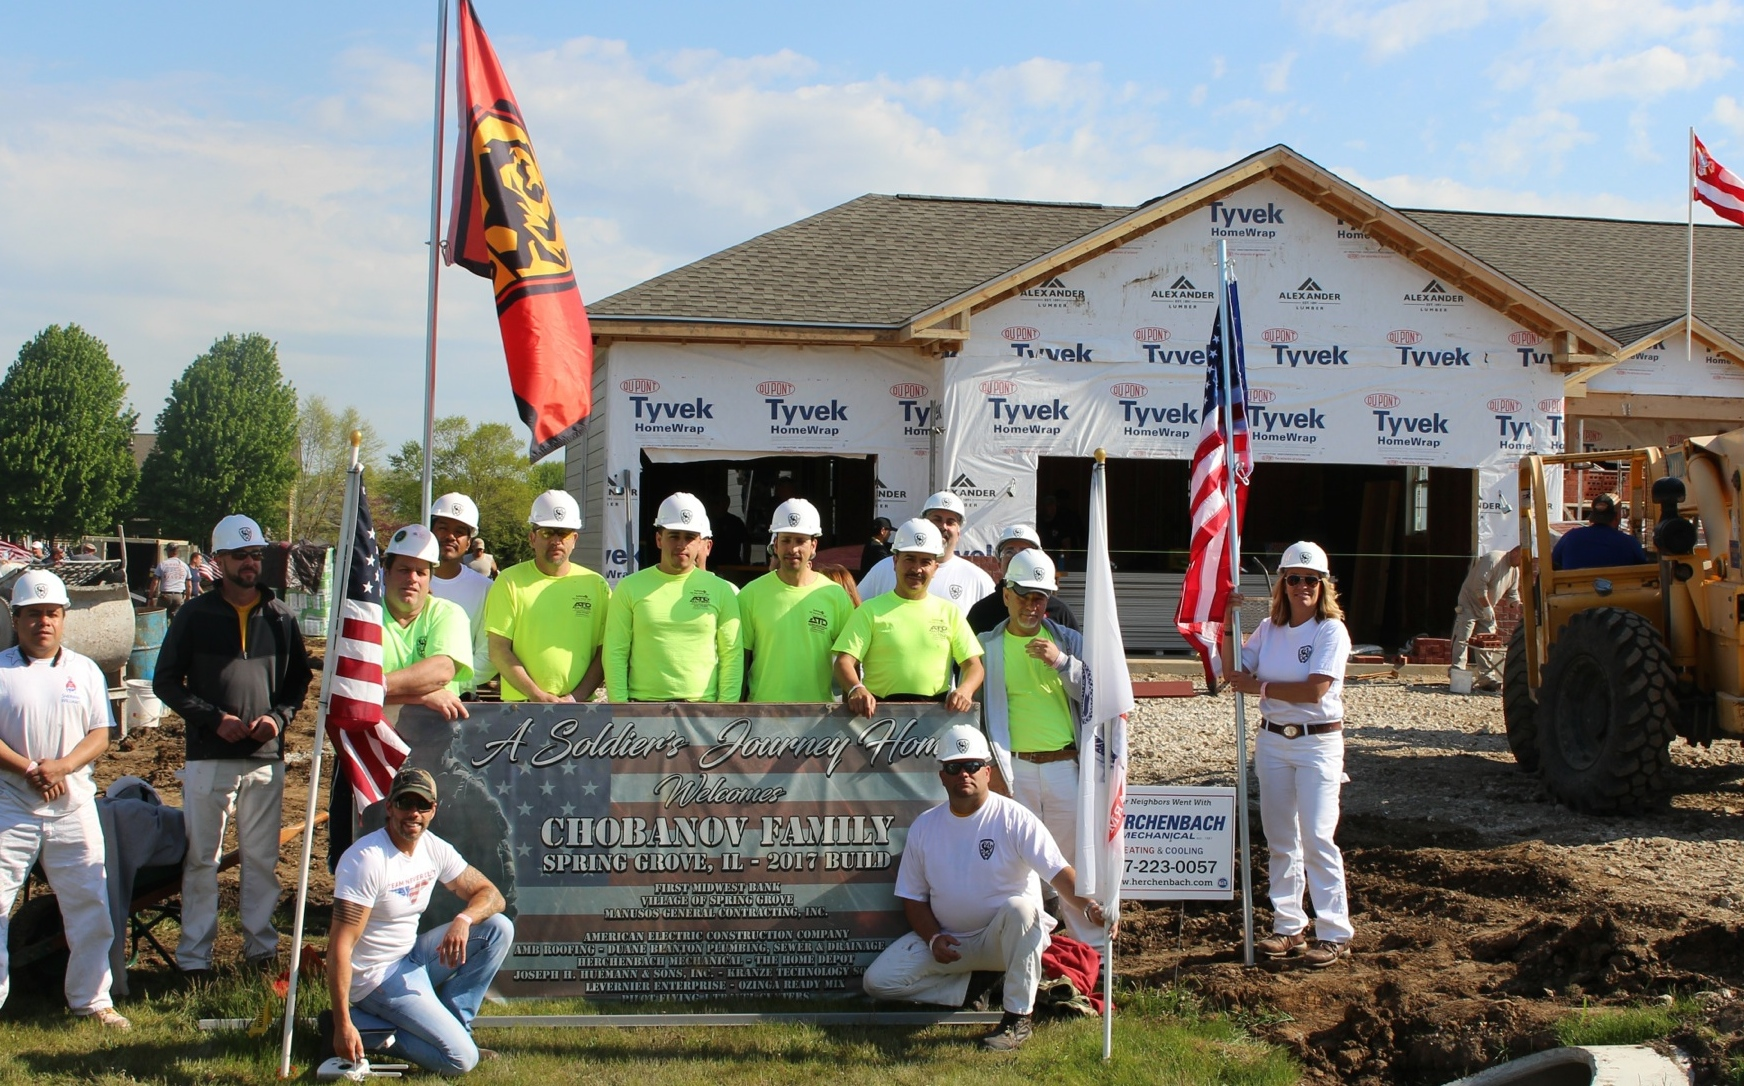 Local Hero Tony Chobanov Awarded New Home With Help of PDC 30 Community Service Grant